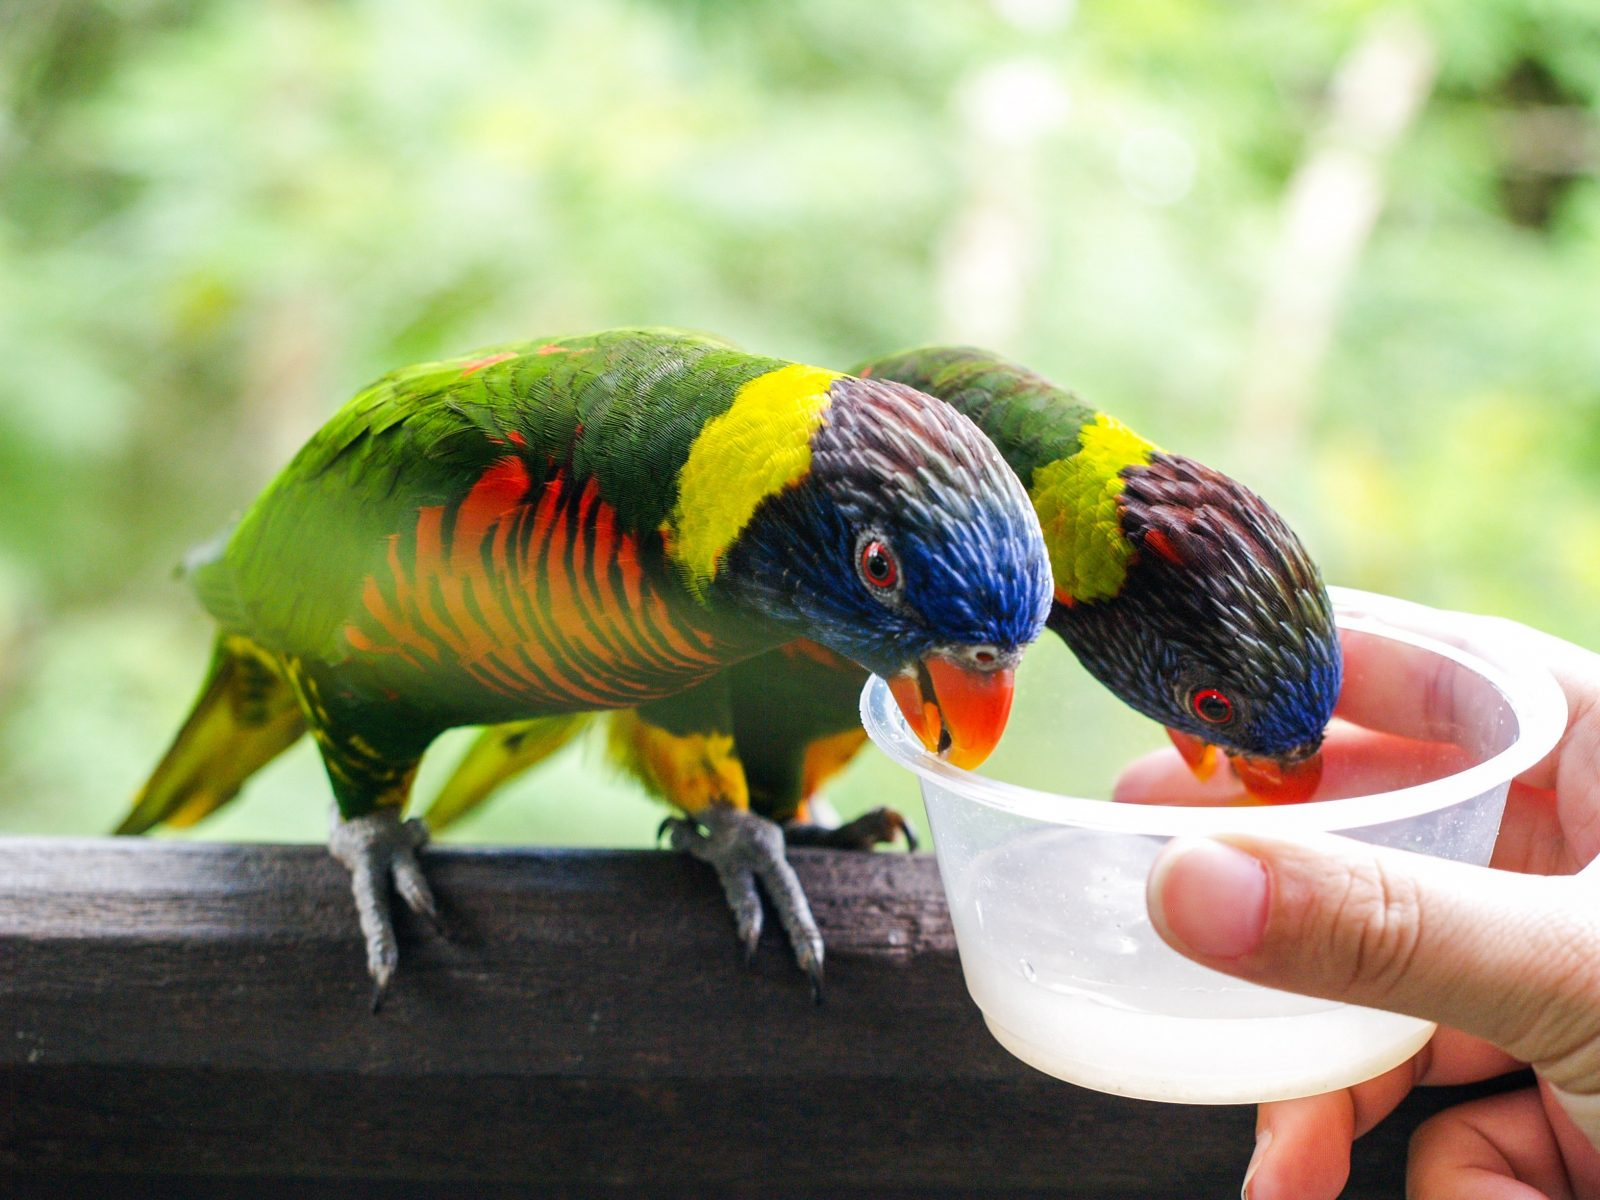 Feeding the lories at Jurong Bird Park is favored by many tourists